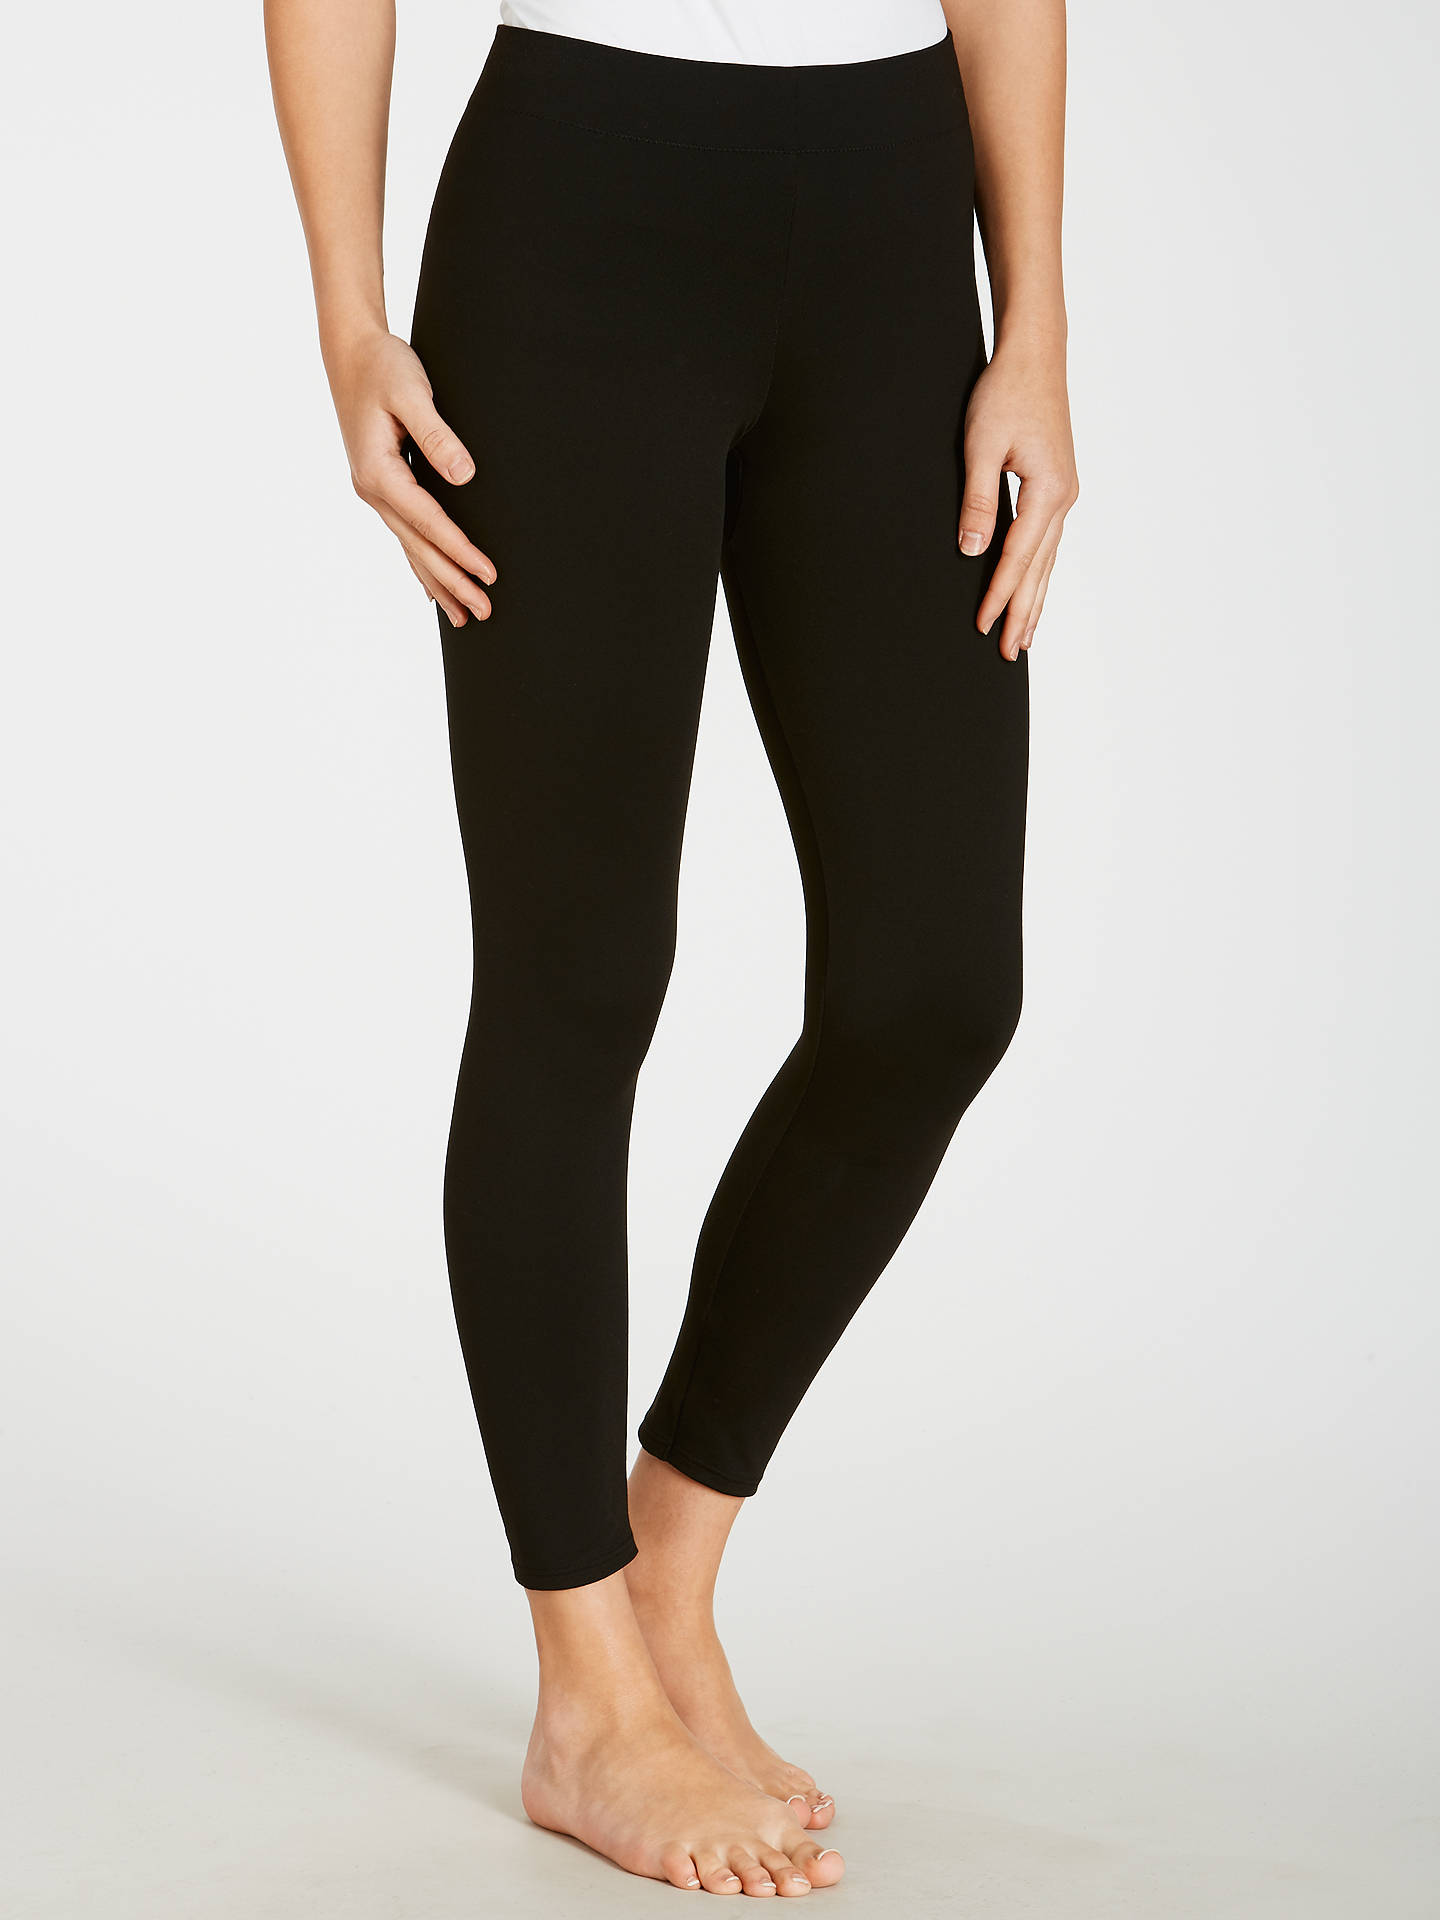 Buy Maidenform Firm Control Leggings, Black, S Online at johnlewis.com